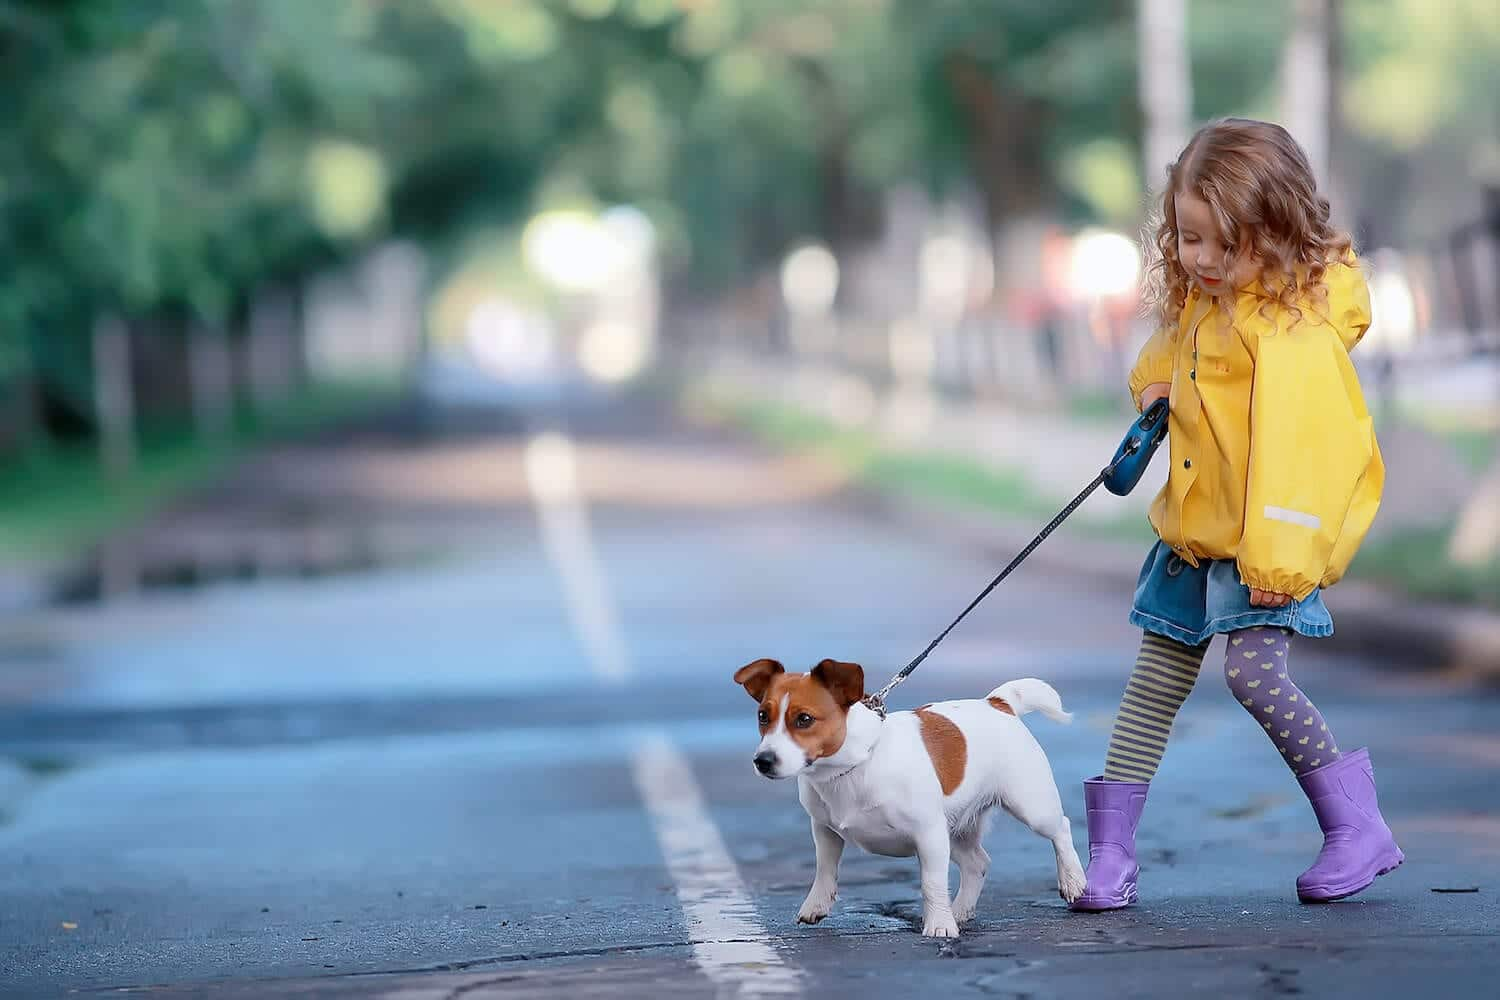 Little kid walking on the street with her dog